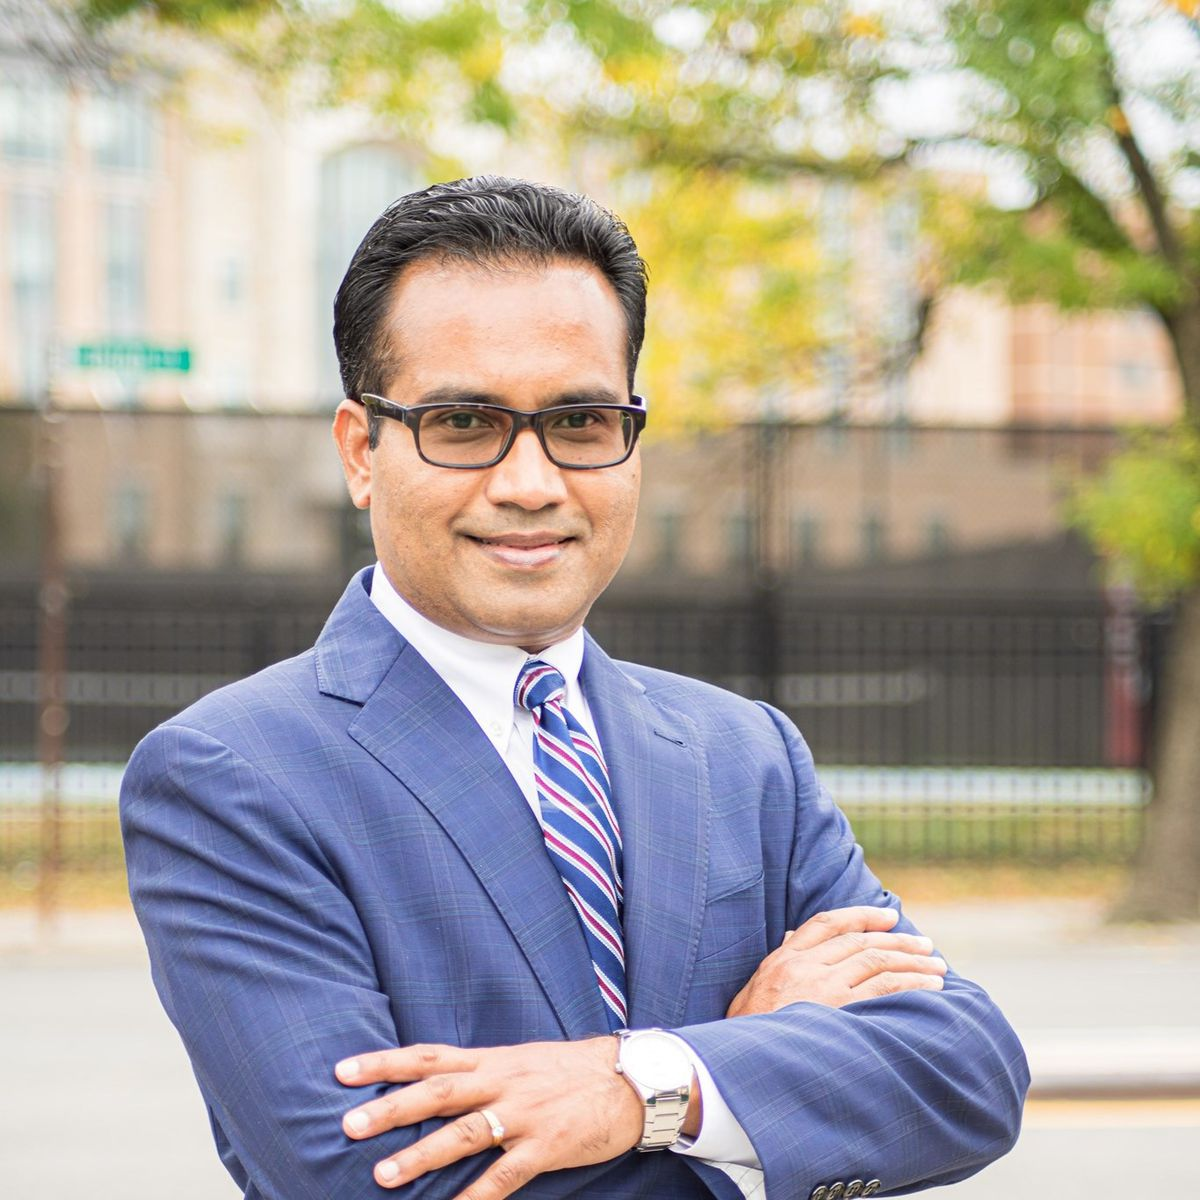 Dilip Nath is running for City Council in the Queens District 24 special election.